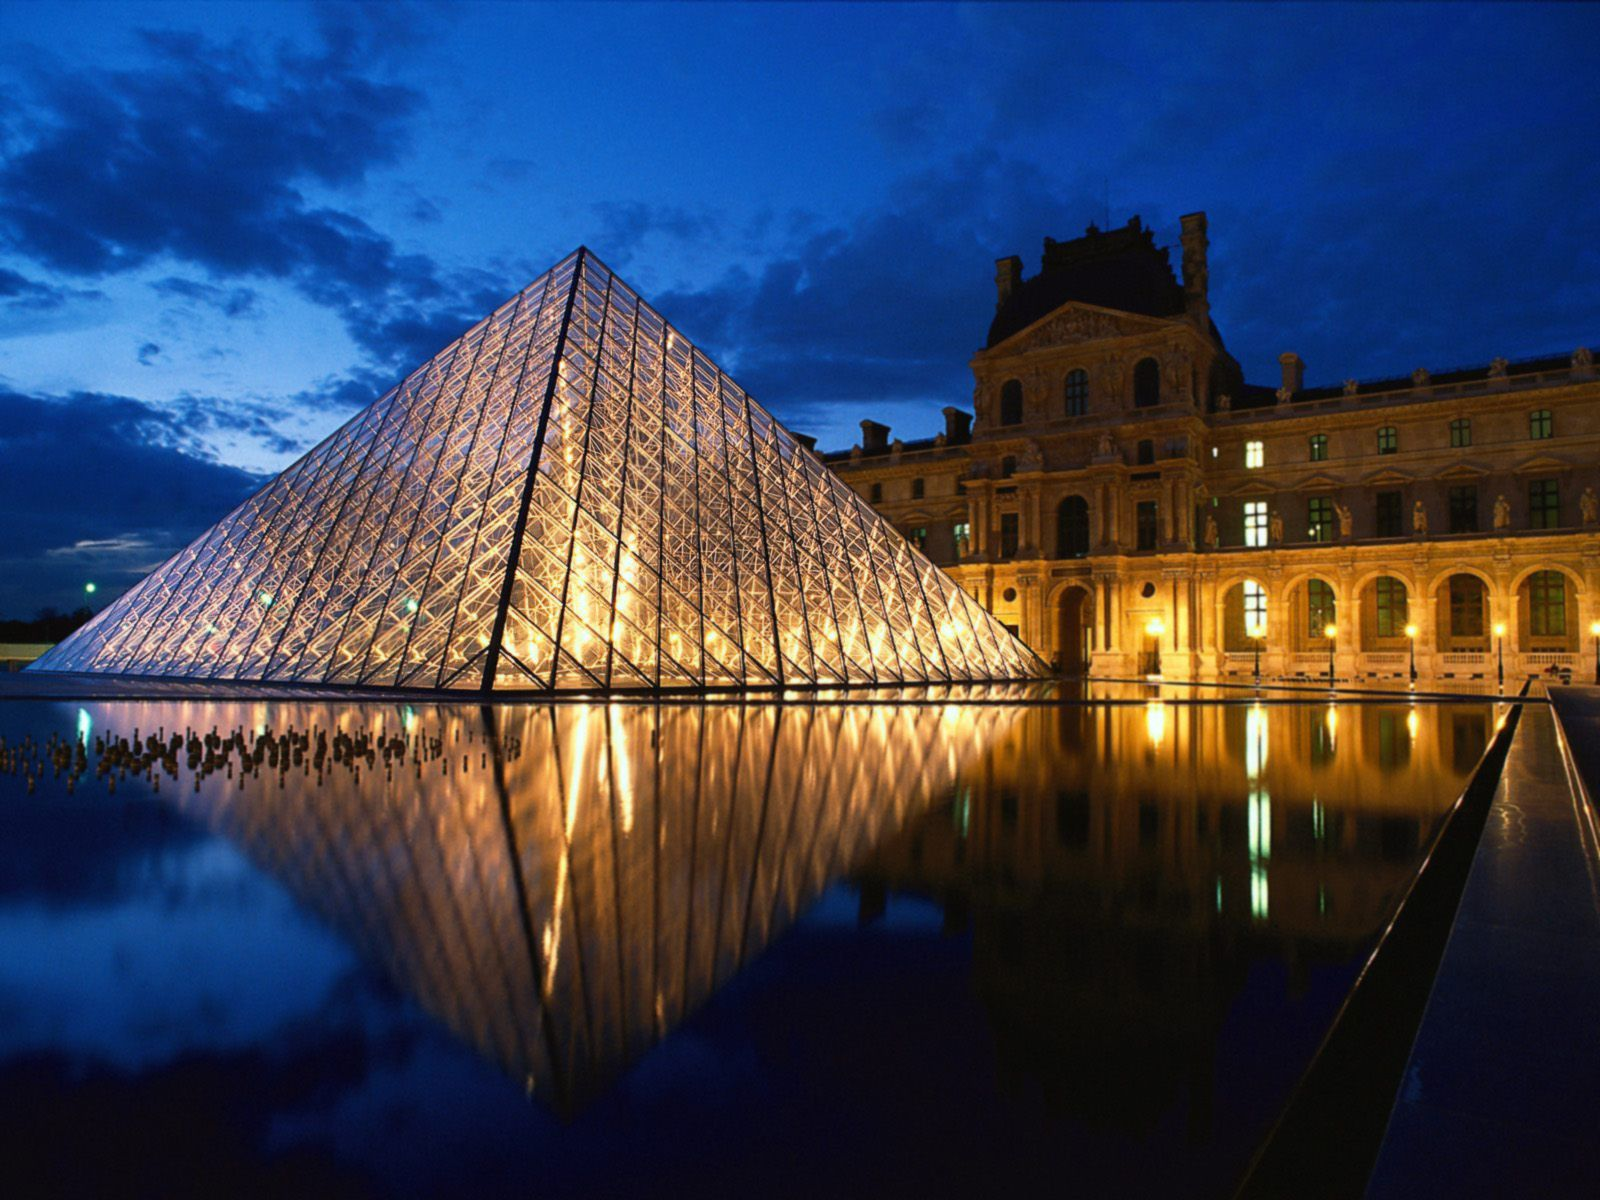 Louvre Museum, Paris, France, check!